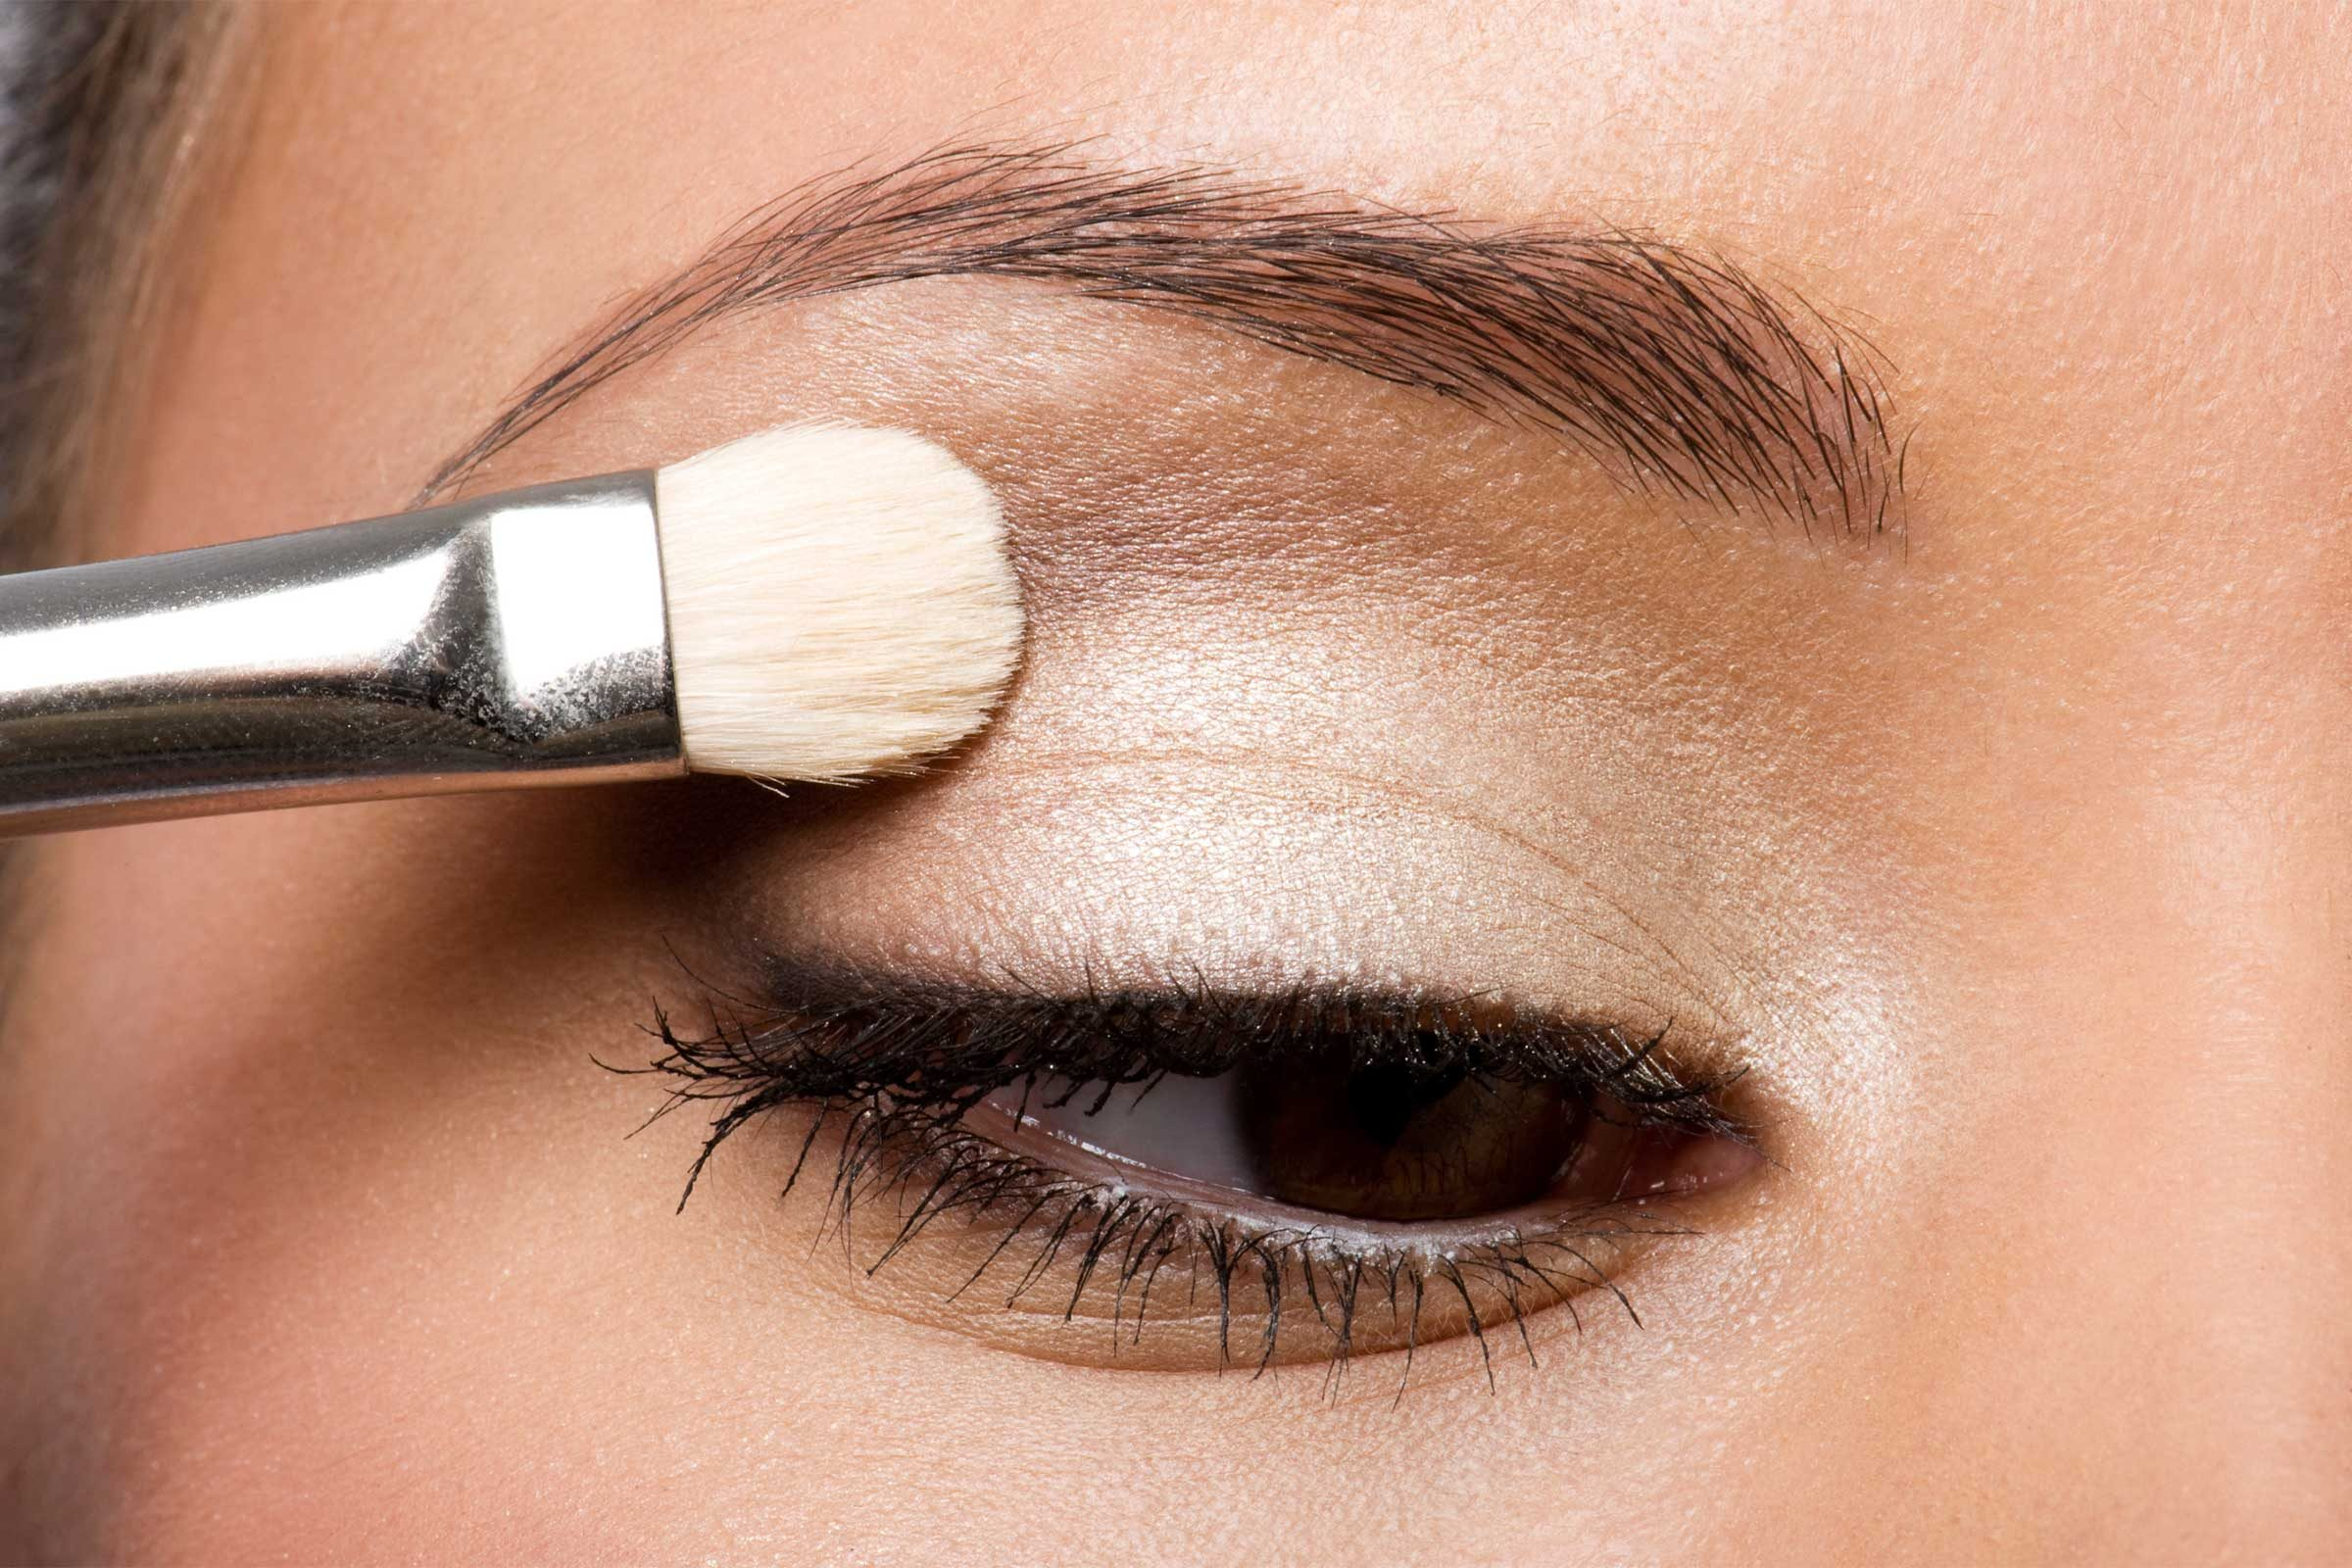 Stick with light colors on your lids. Make Eyes Look Bigger with Makeup   Reader s Digest   Reader s Digest